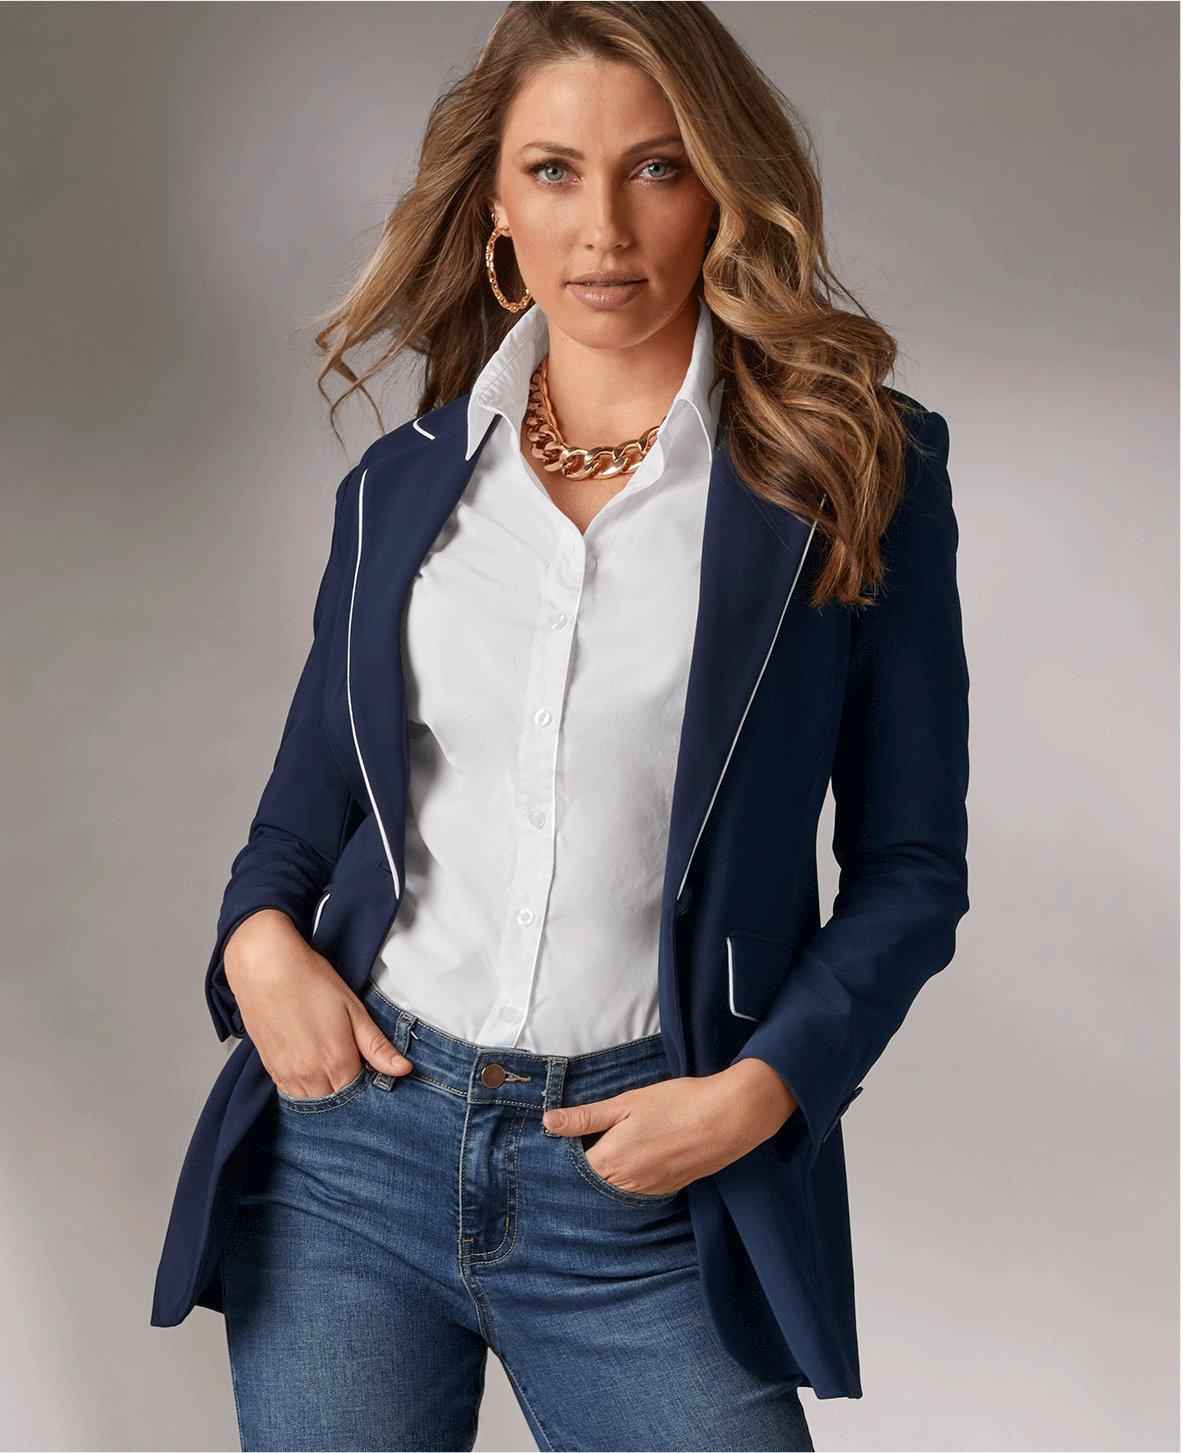 model wearing a navy blazer with white piping, white button-up shirt, chunky gold chain link necklace, gold chain link hoop earrings, and jeans.